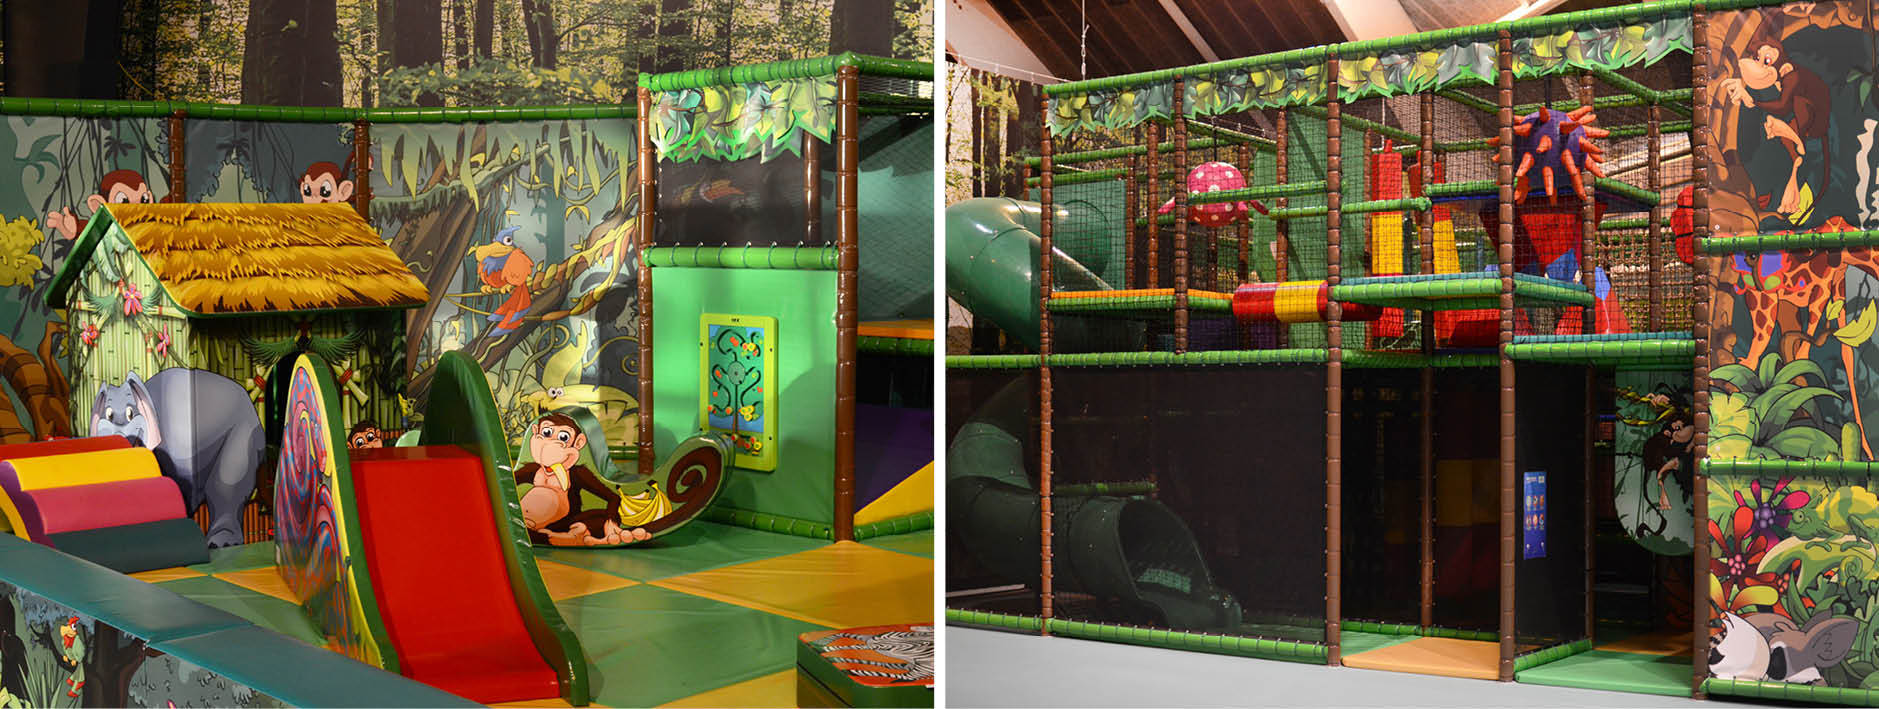 Soft play and play structure